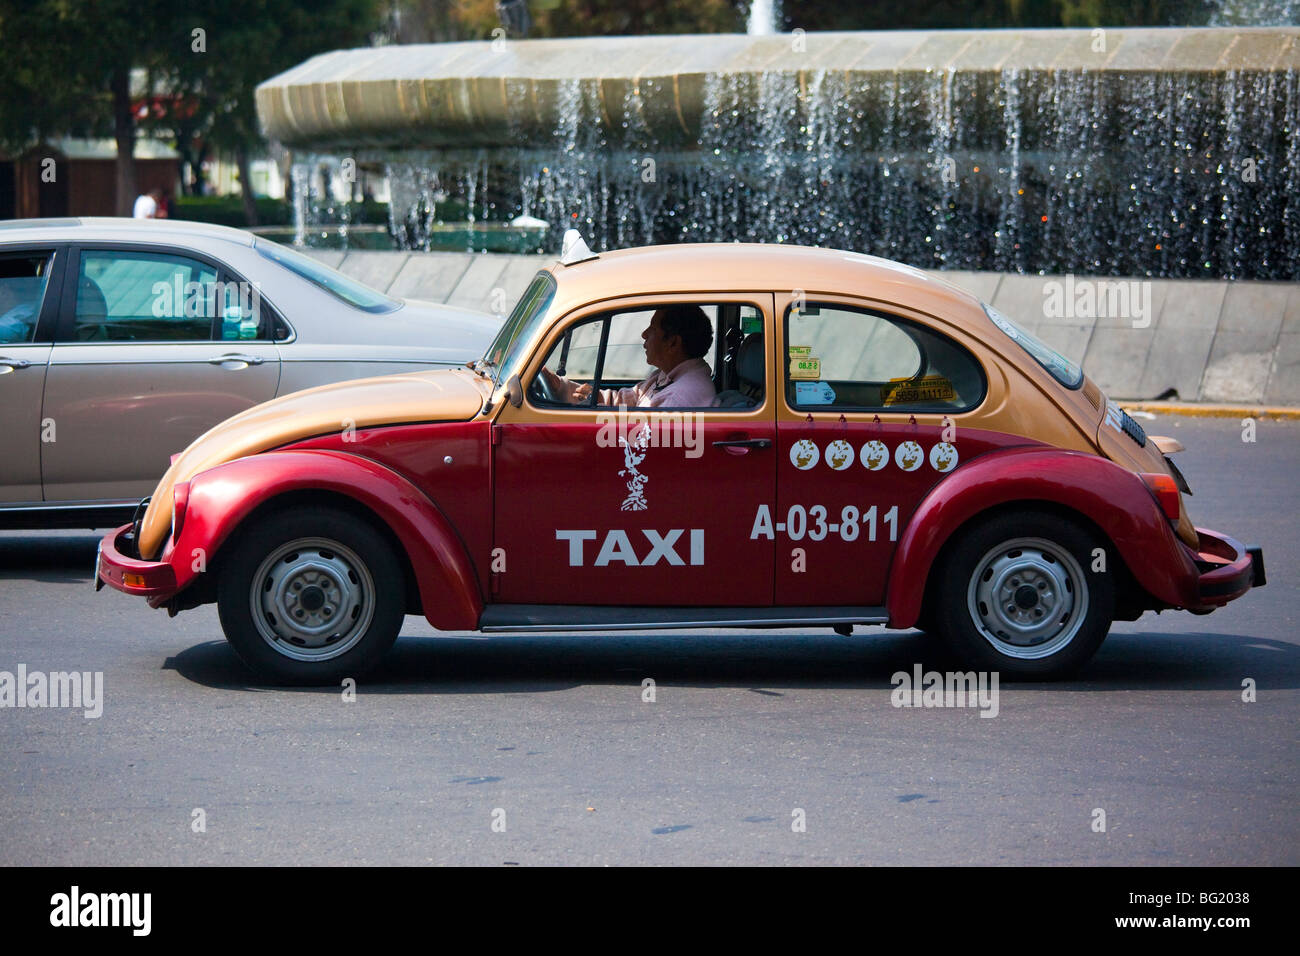 VW Taxi on the Diana Fountain Roundabout on Paseo de La Reforma in Mexico City Stock Photo